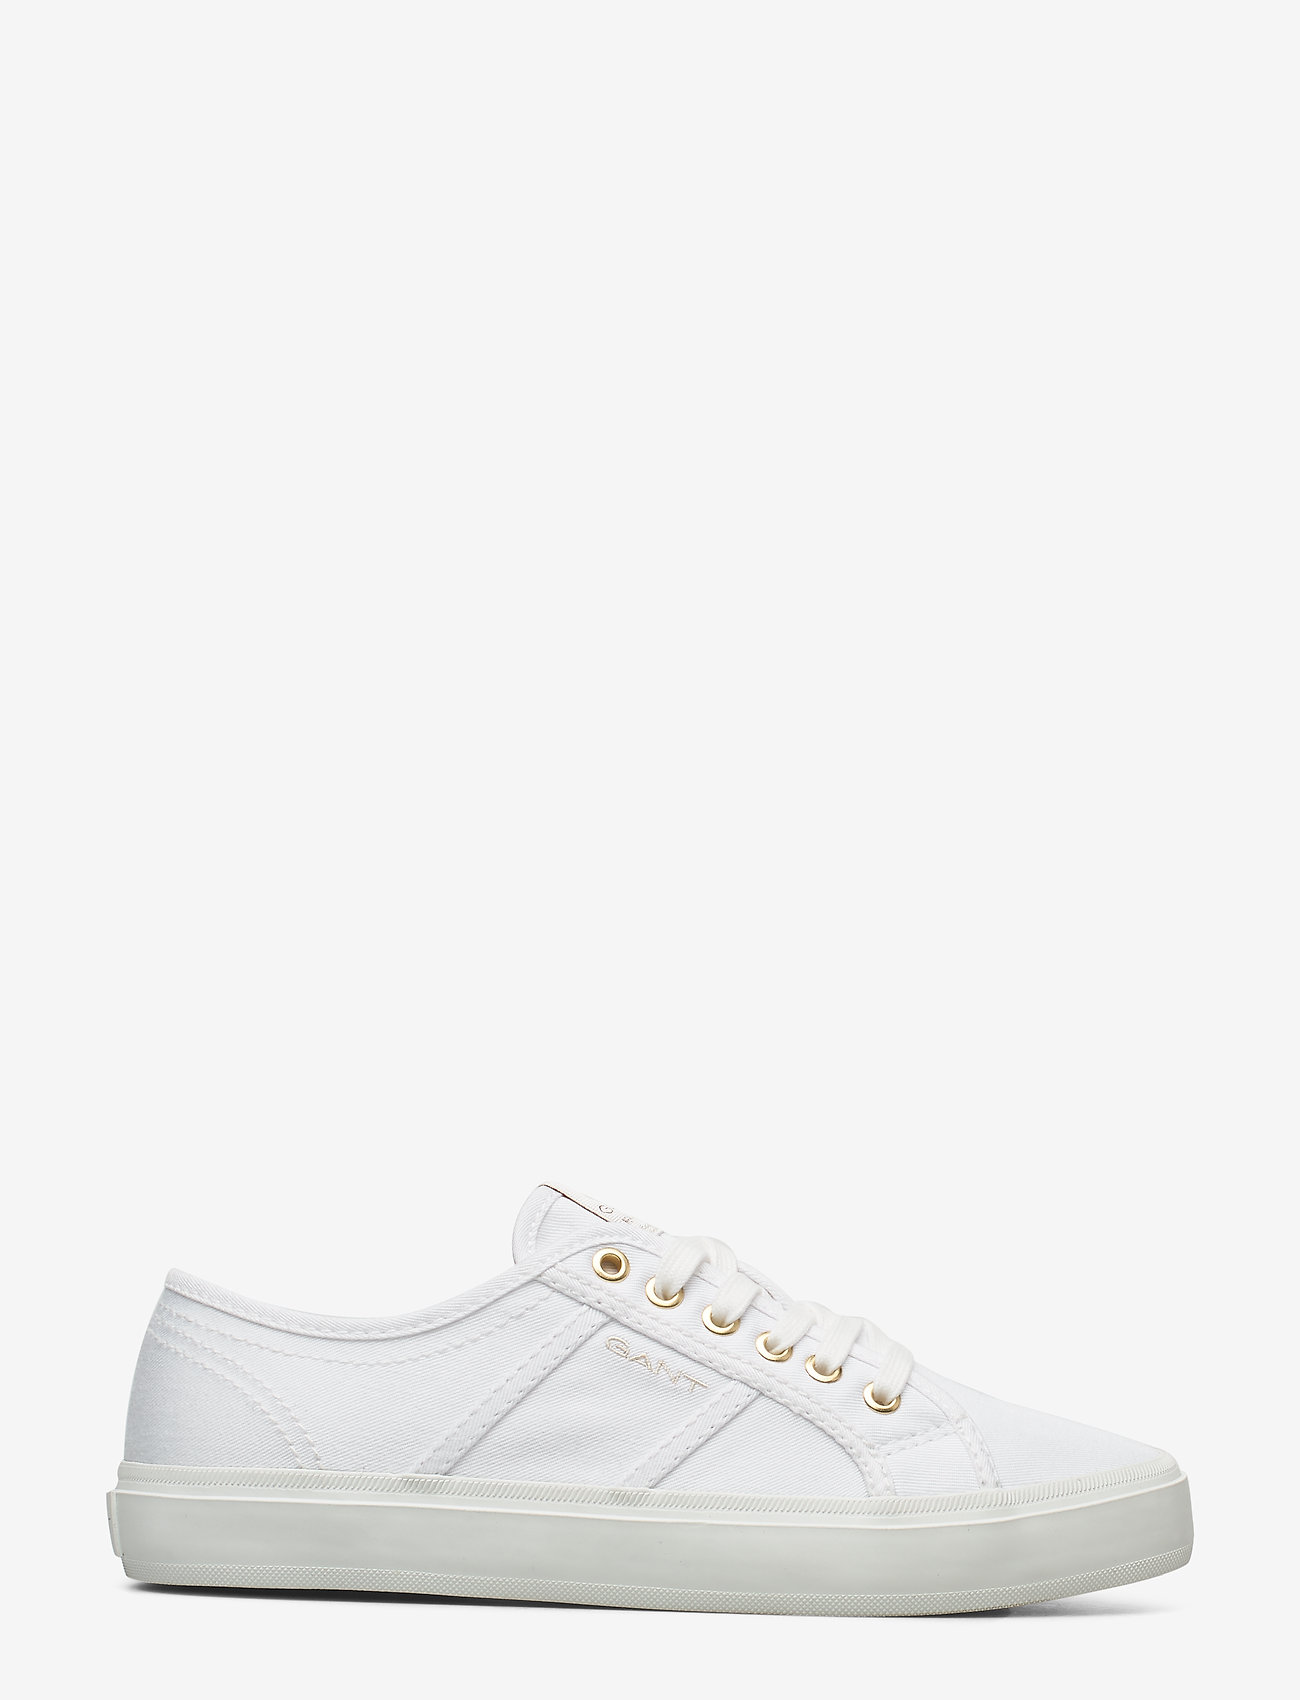 GANT - Pinestreet Low laceshoes - låga sneakers - white